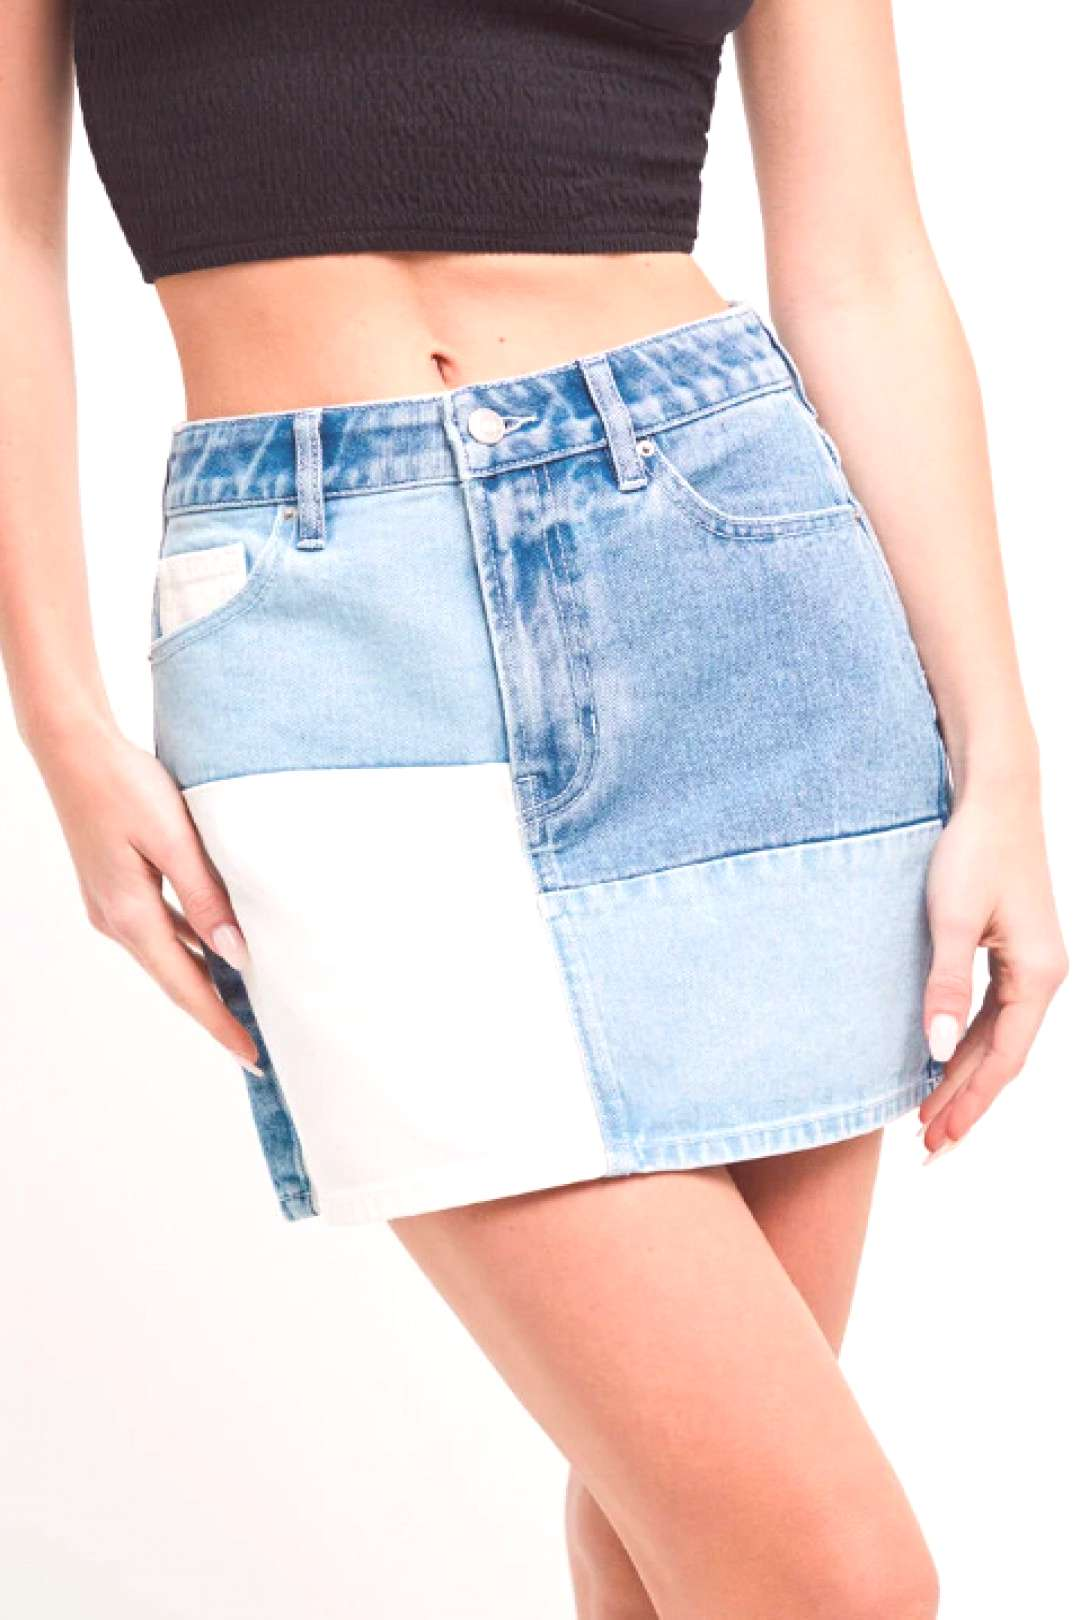 PacSun 5-Pocket Pieced Skirt PacSun 5-Pocket Pieced Skirt - PacSun takes your style to the next le